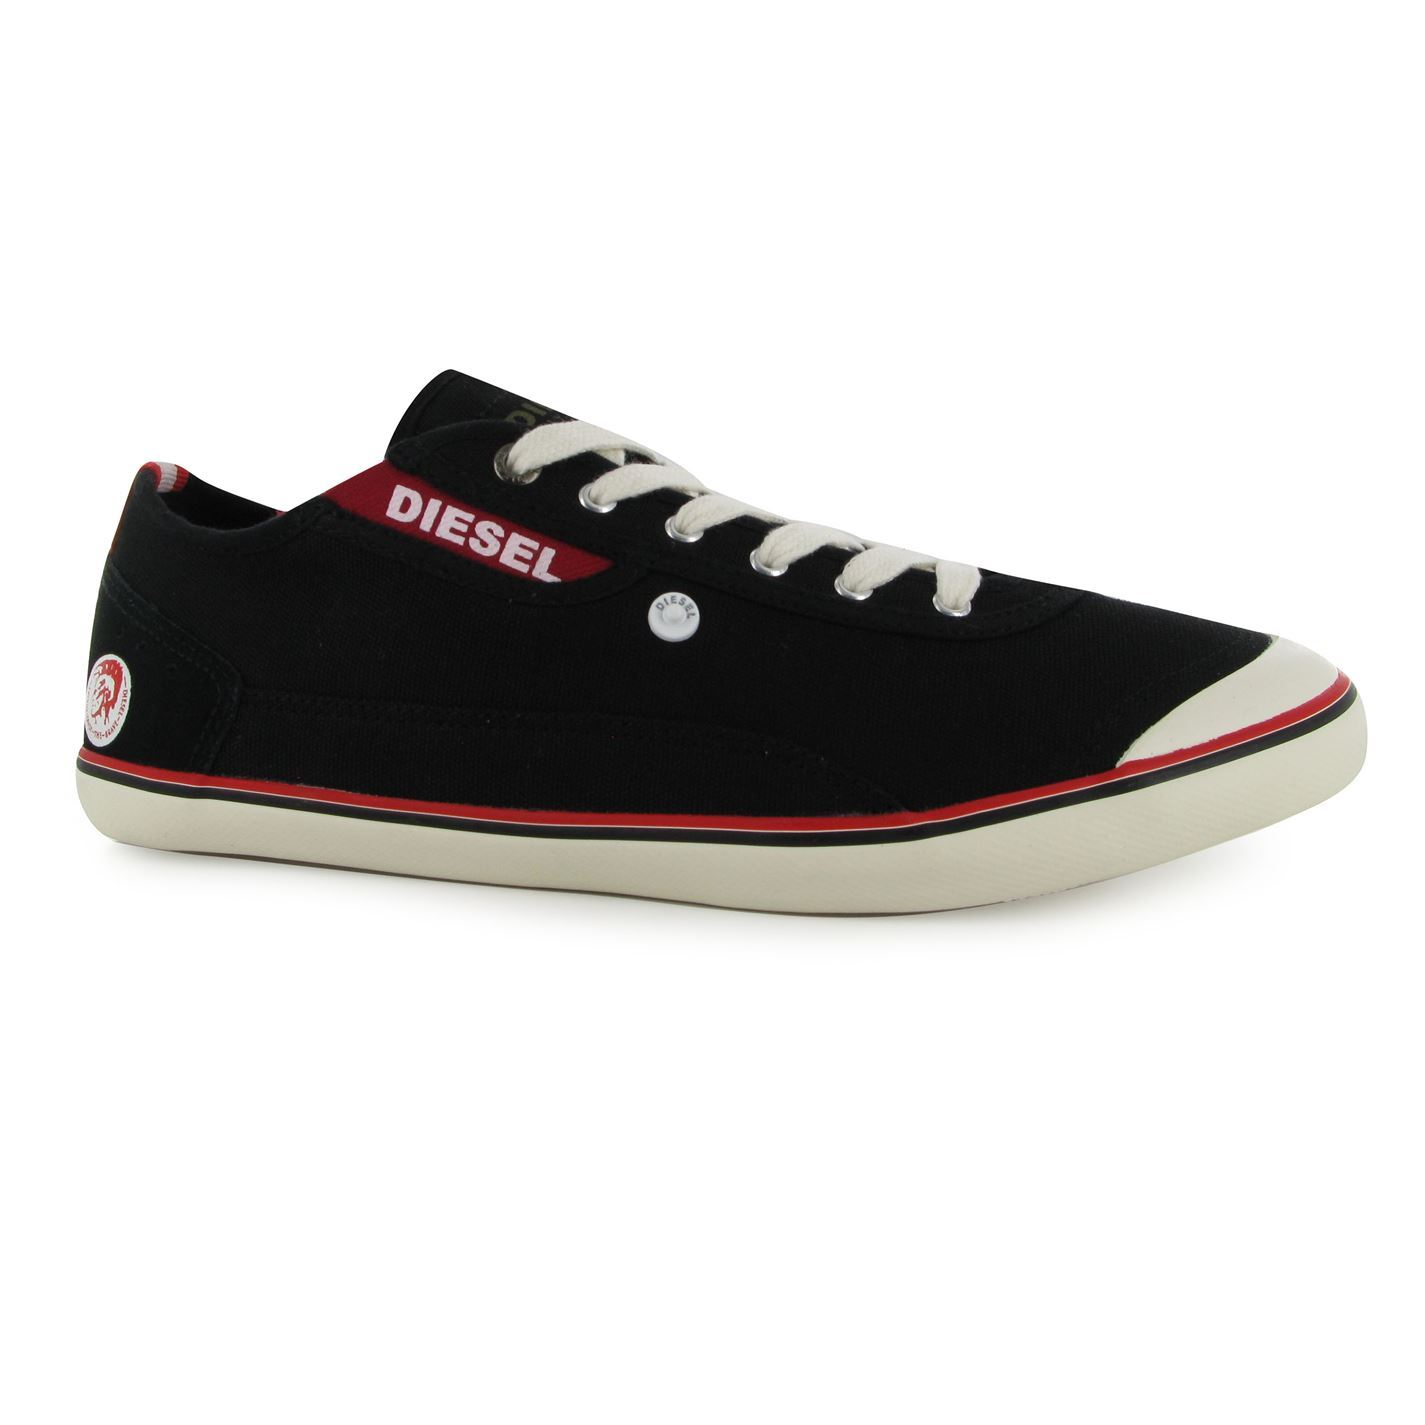 diesel mens kr312 canvas shoes synthetic sole cushioned